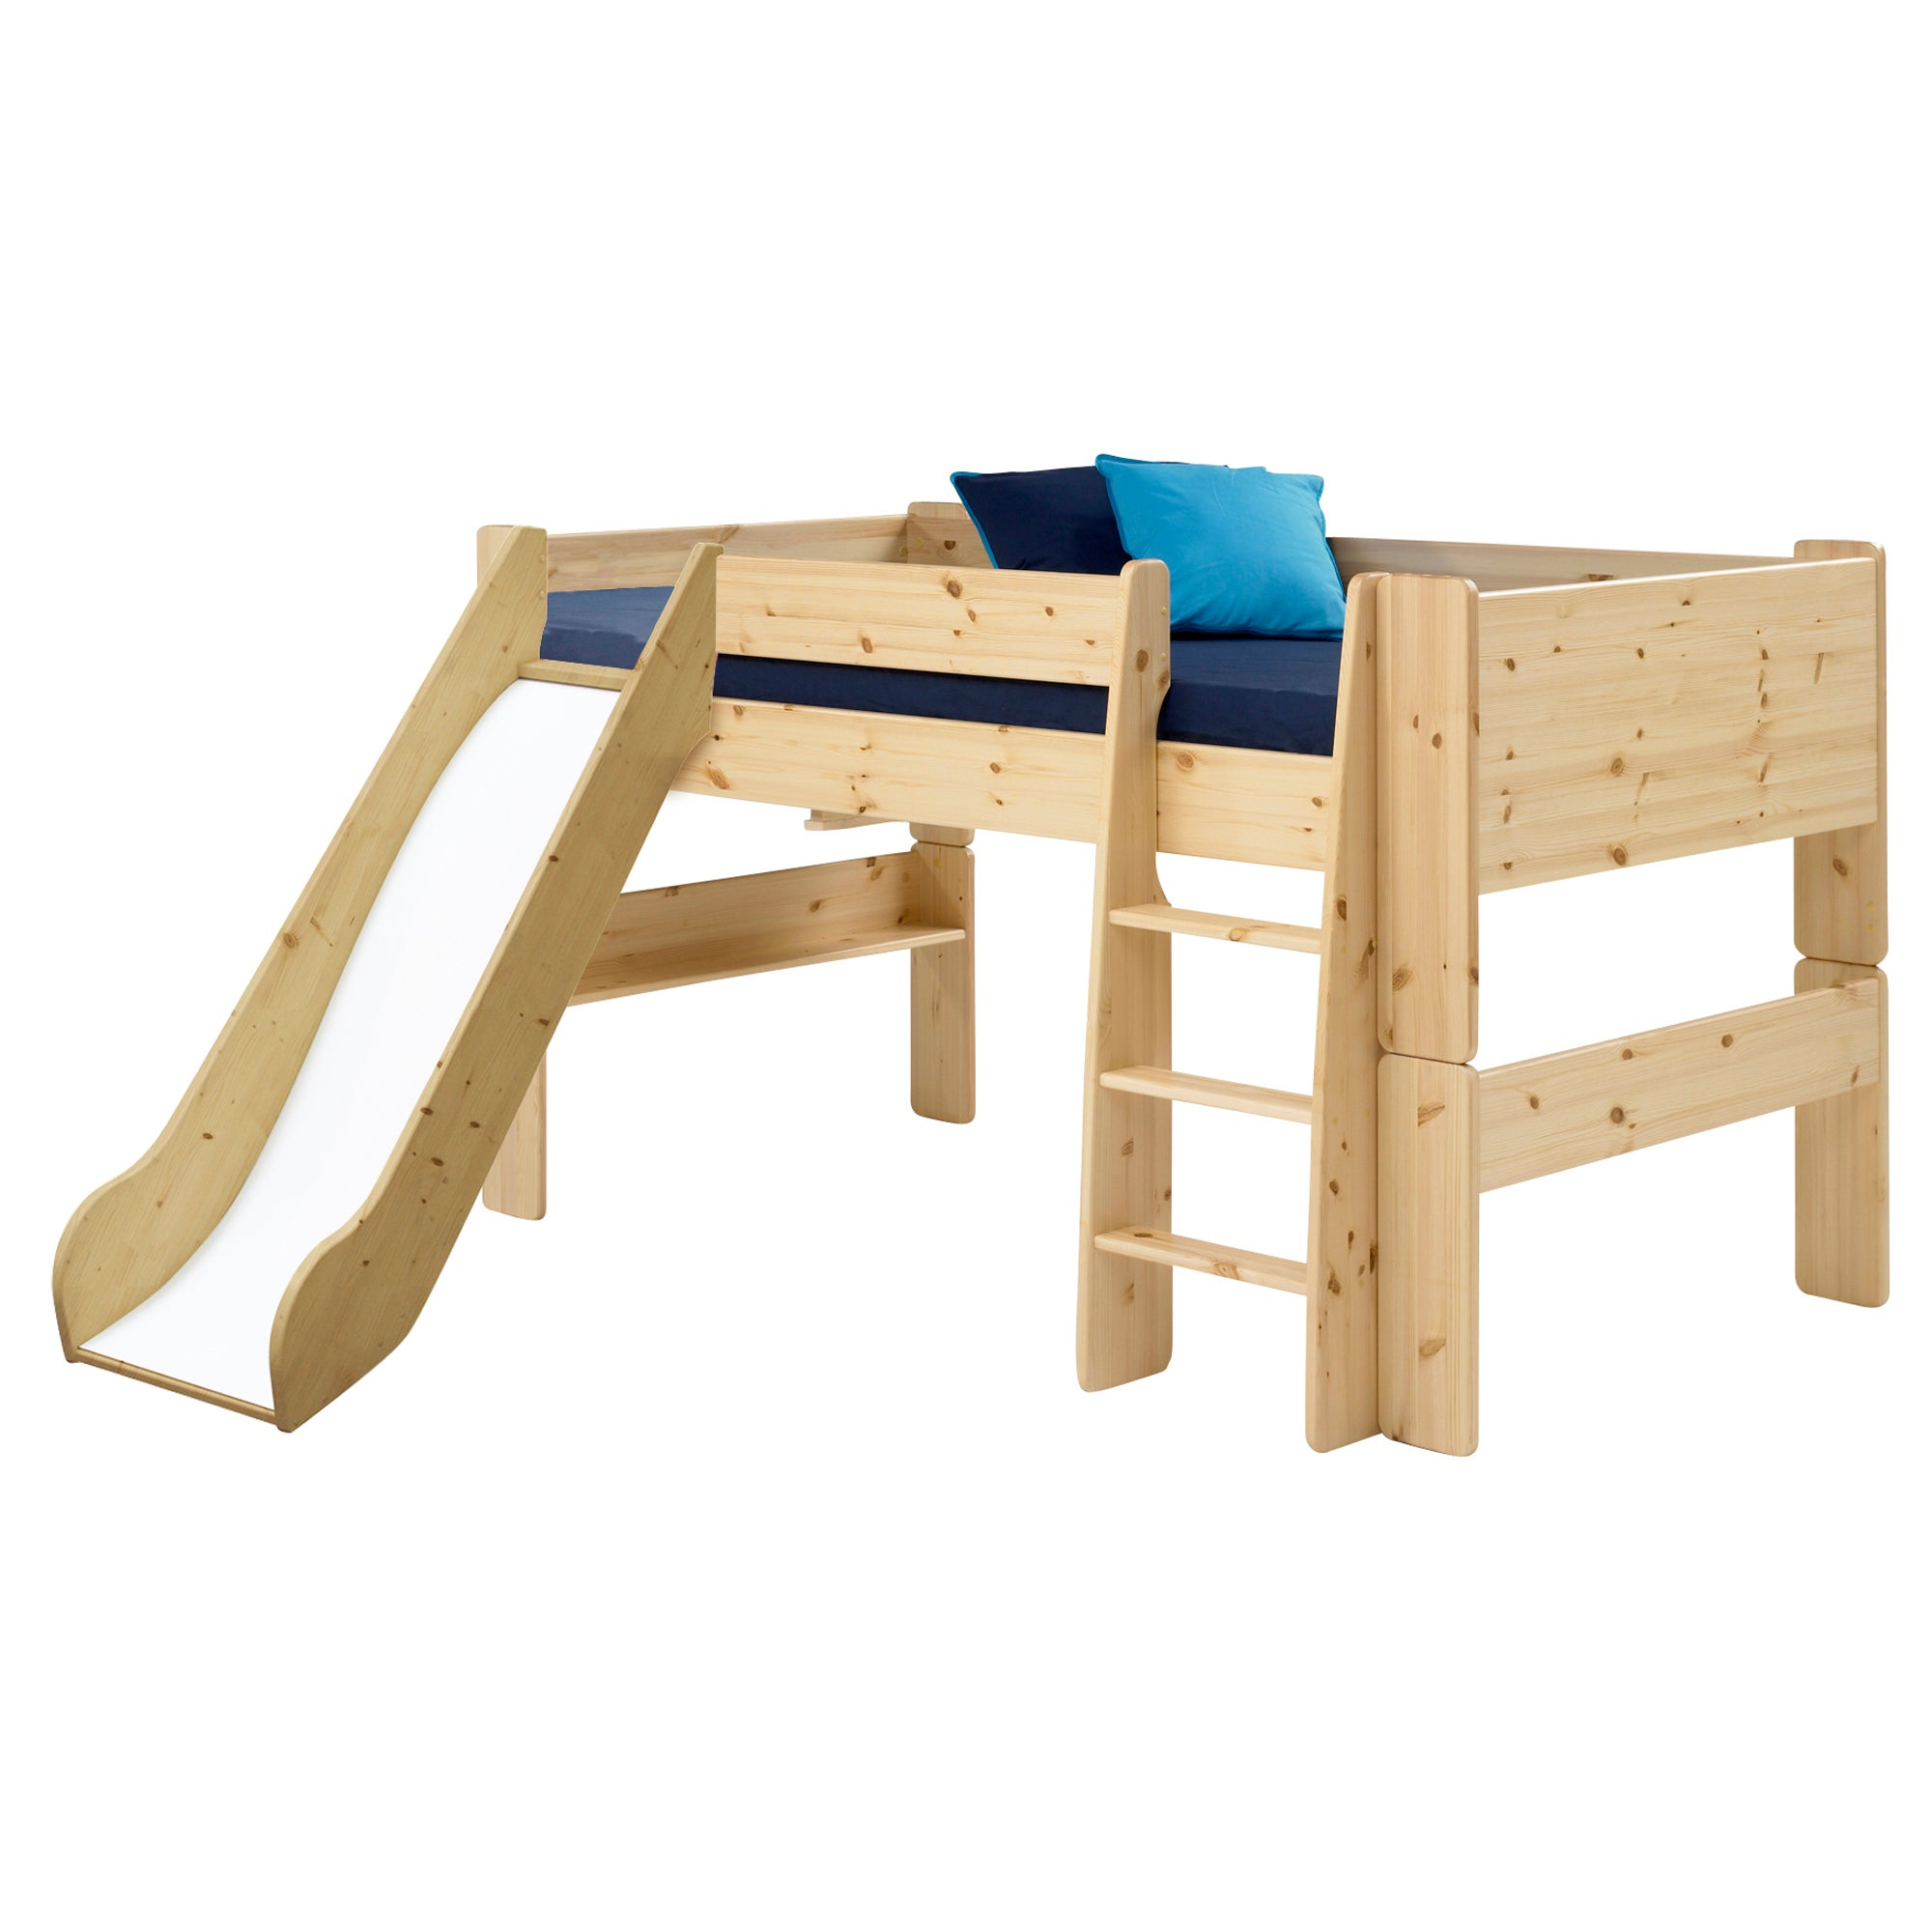 Kids Harper Pine Mid Sleeper Bed Frame with Slide